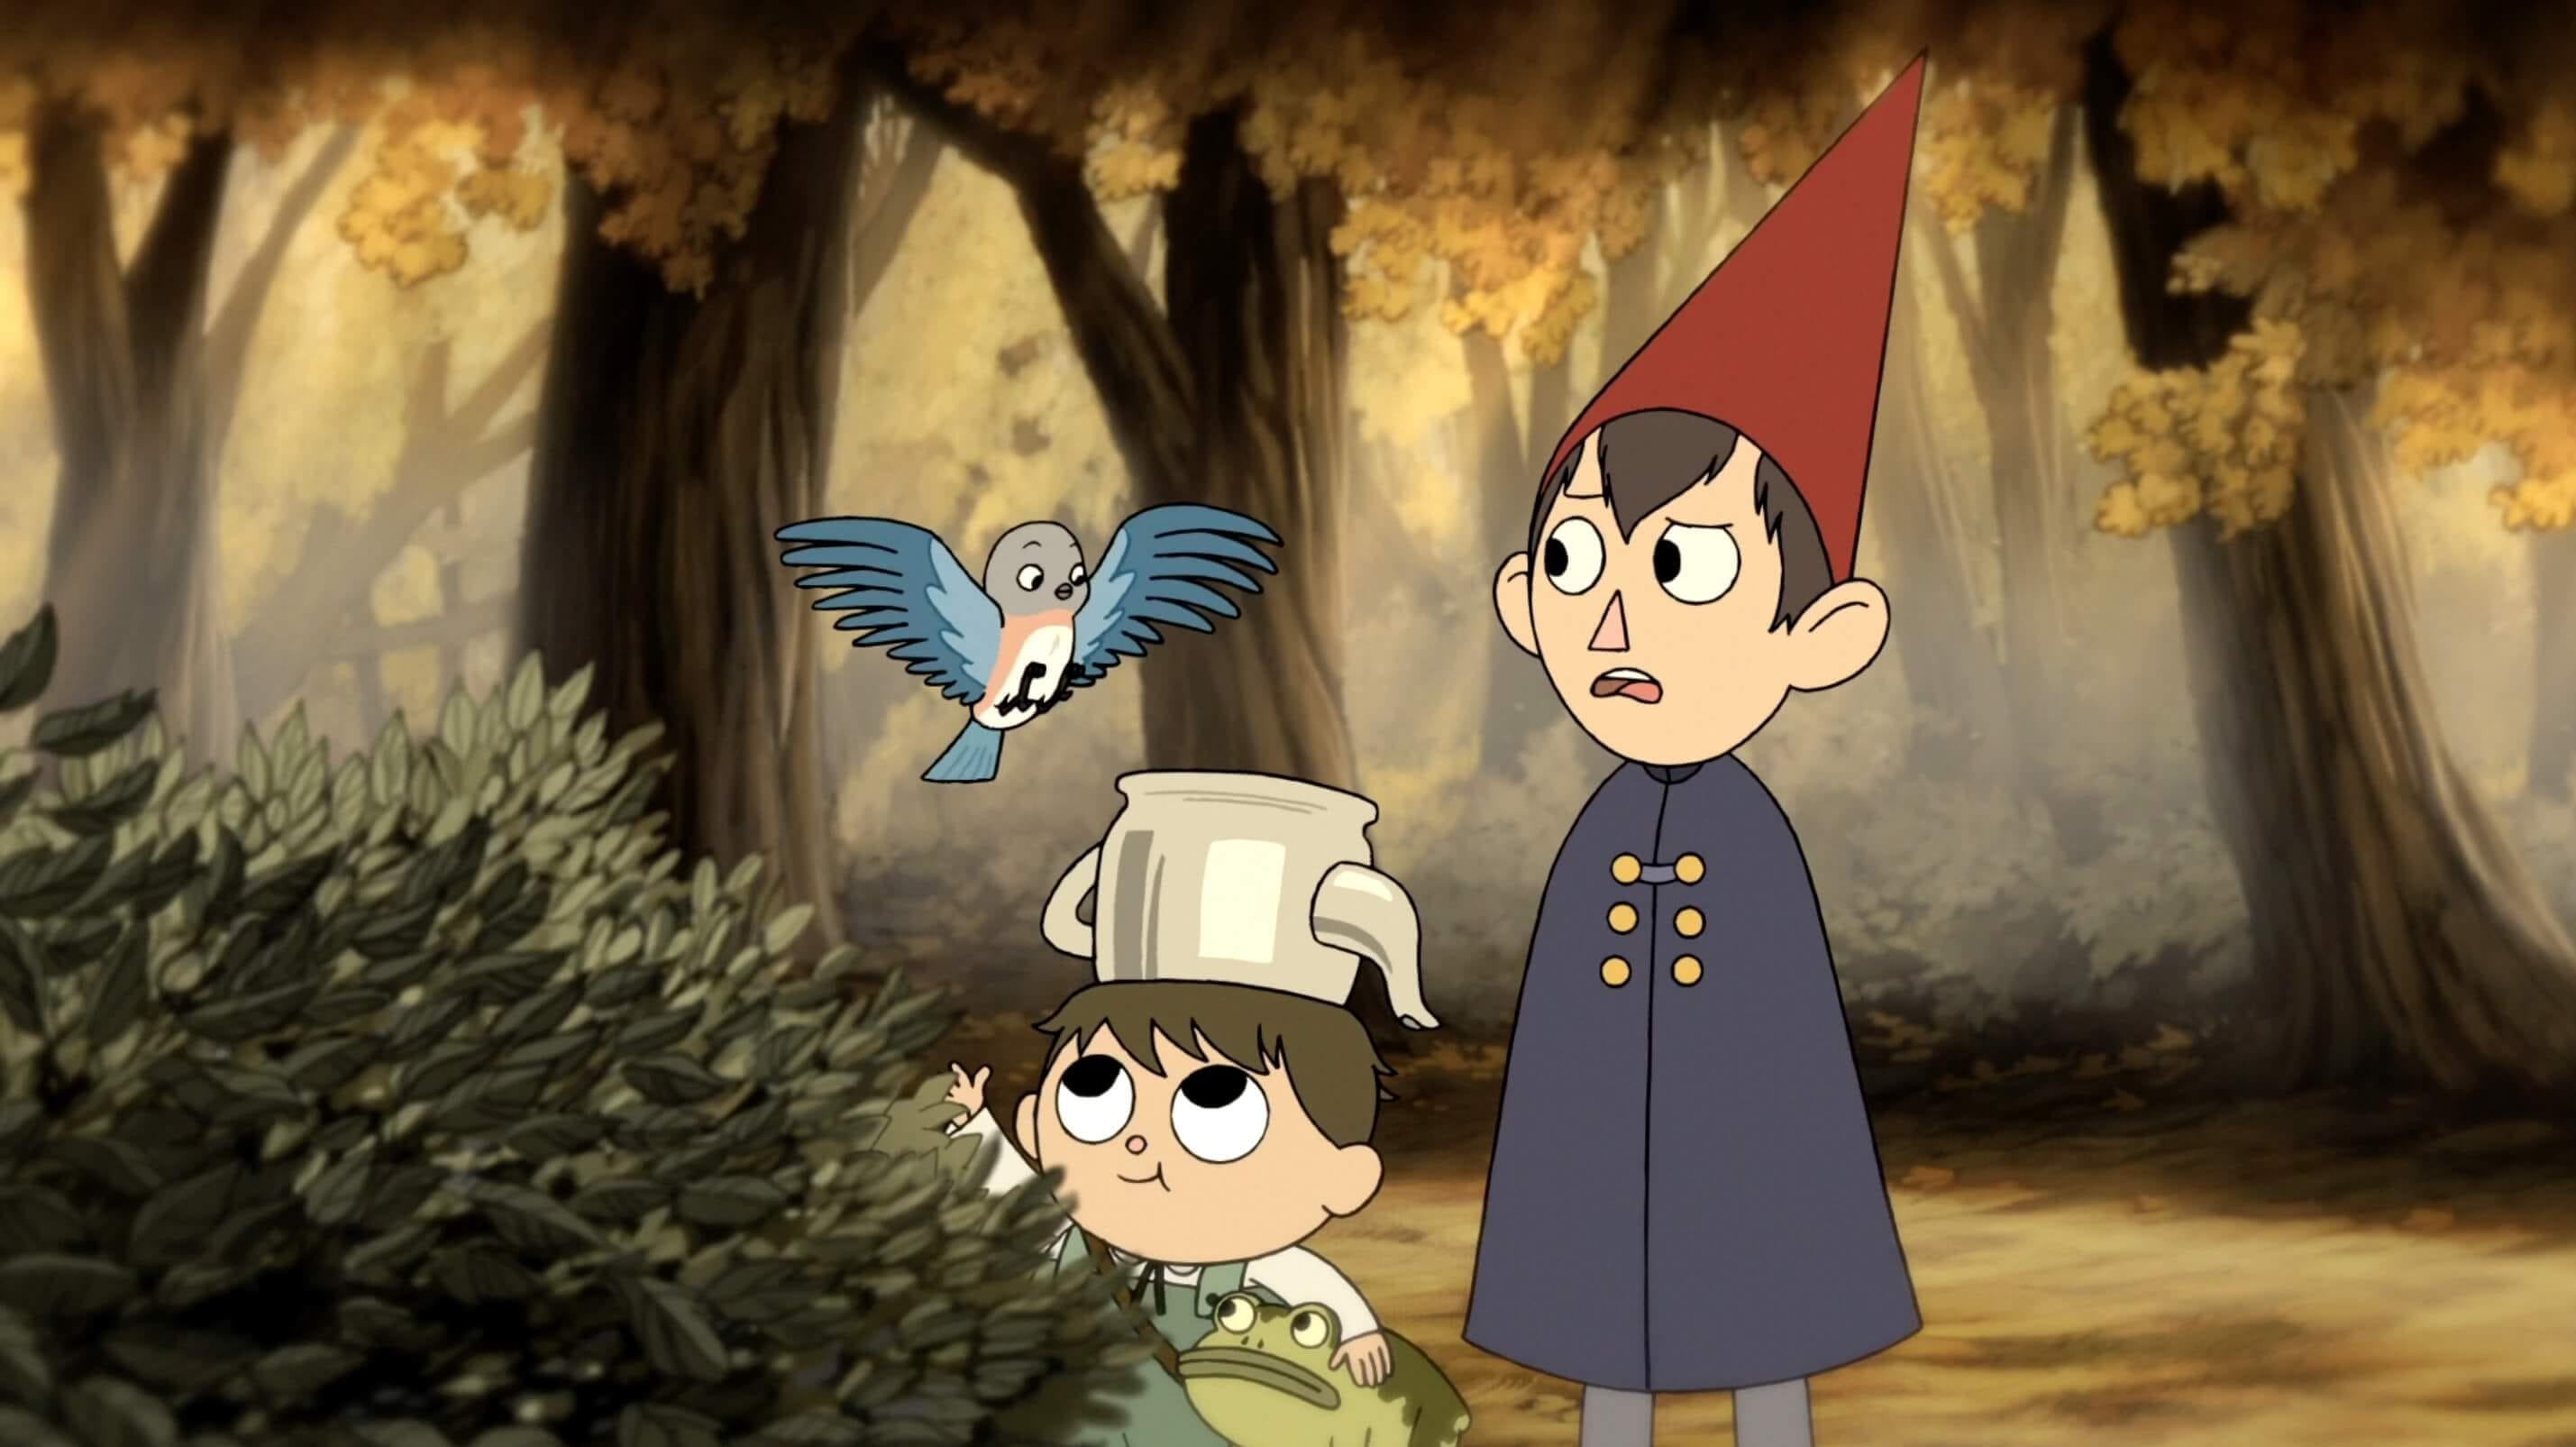 Download Over The Garden Wall 2014 Hd 720p Full Episode For Free Watch Or Fast Download Hd